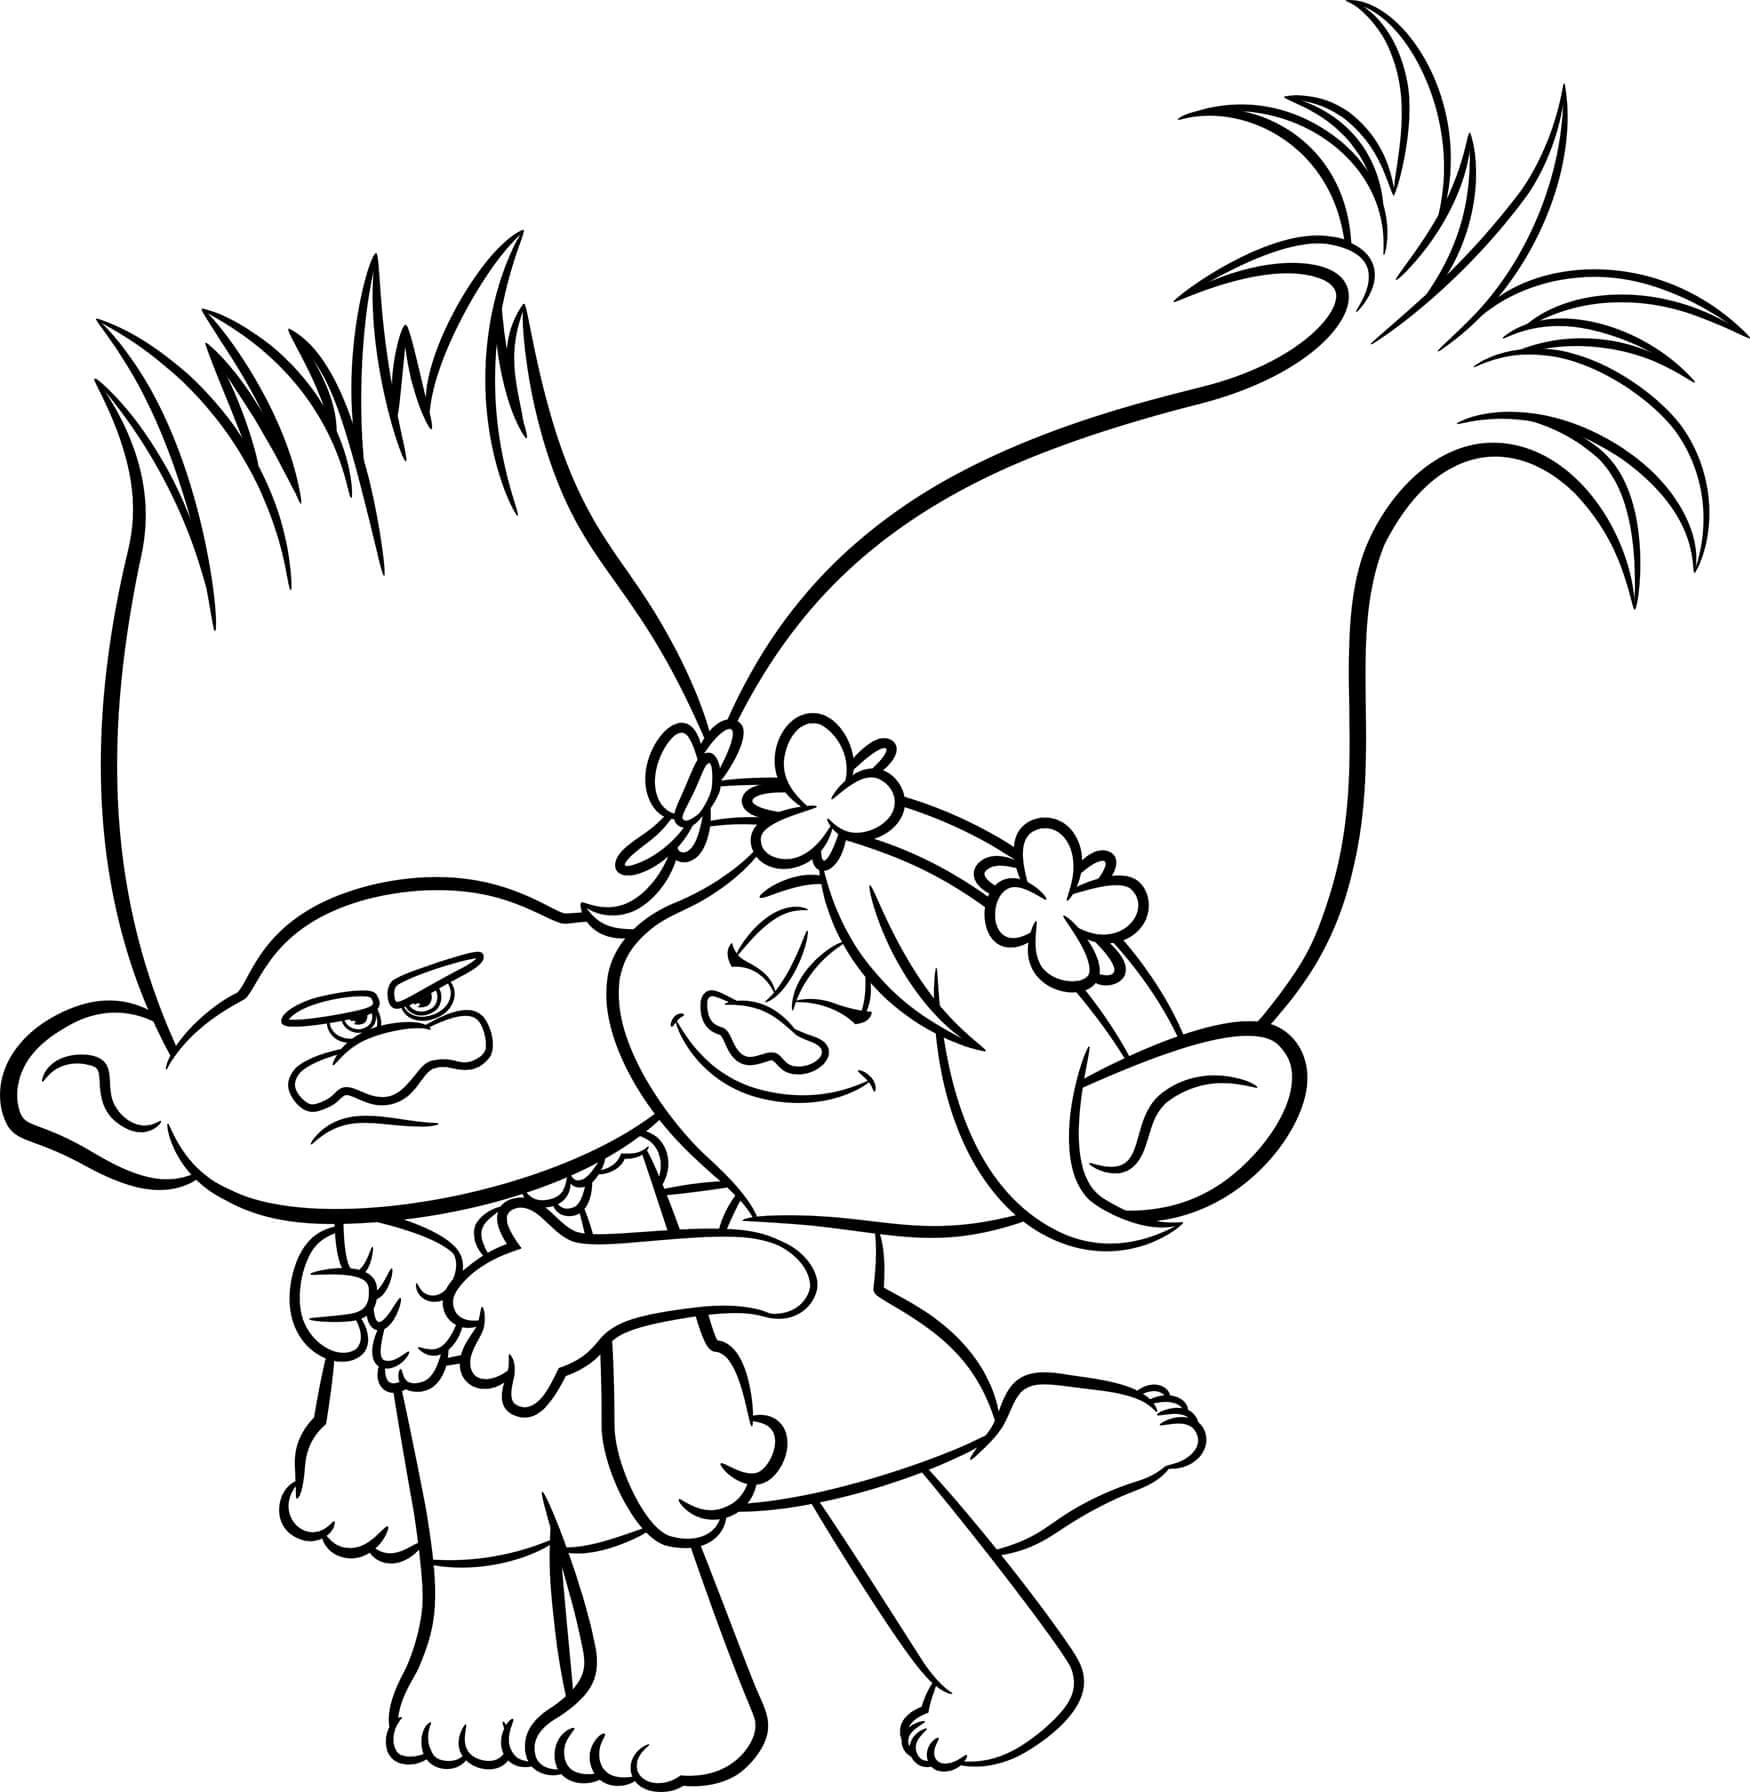 trolls_activitysheet_coloringpage2